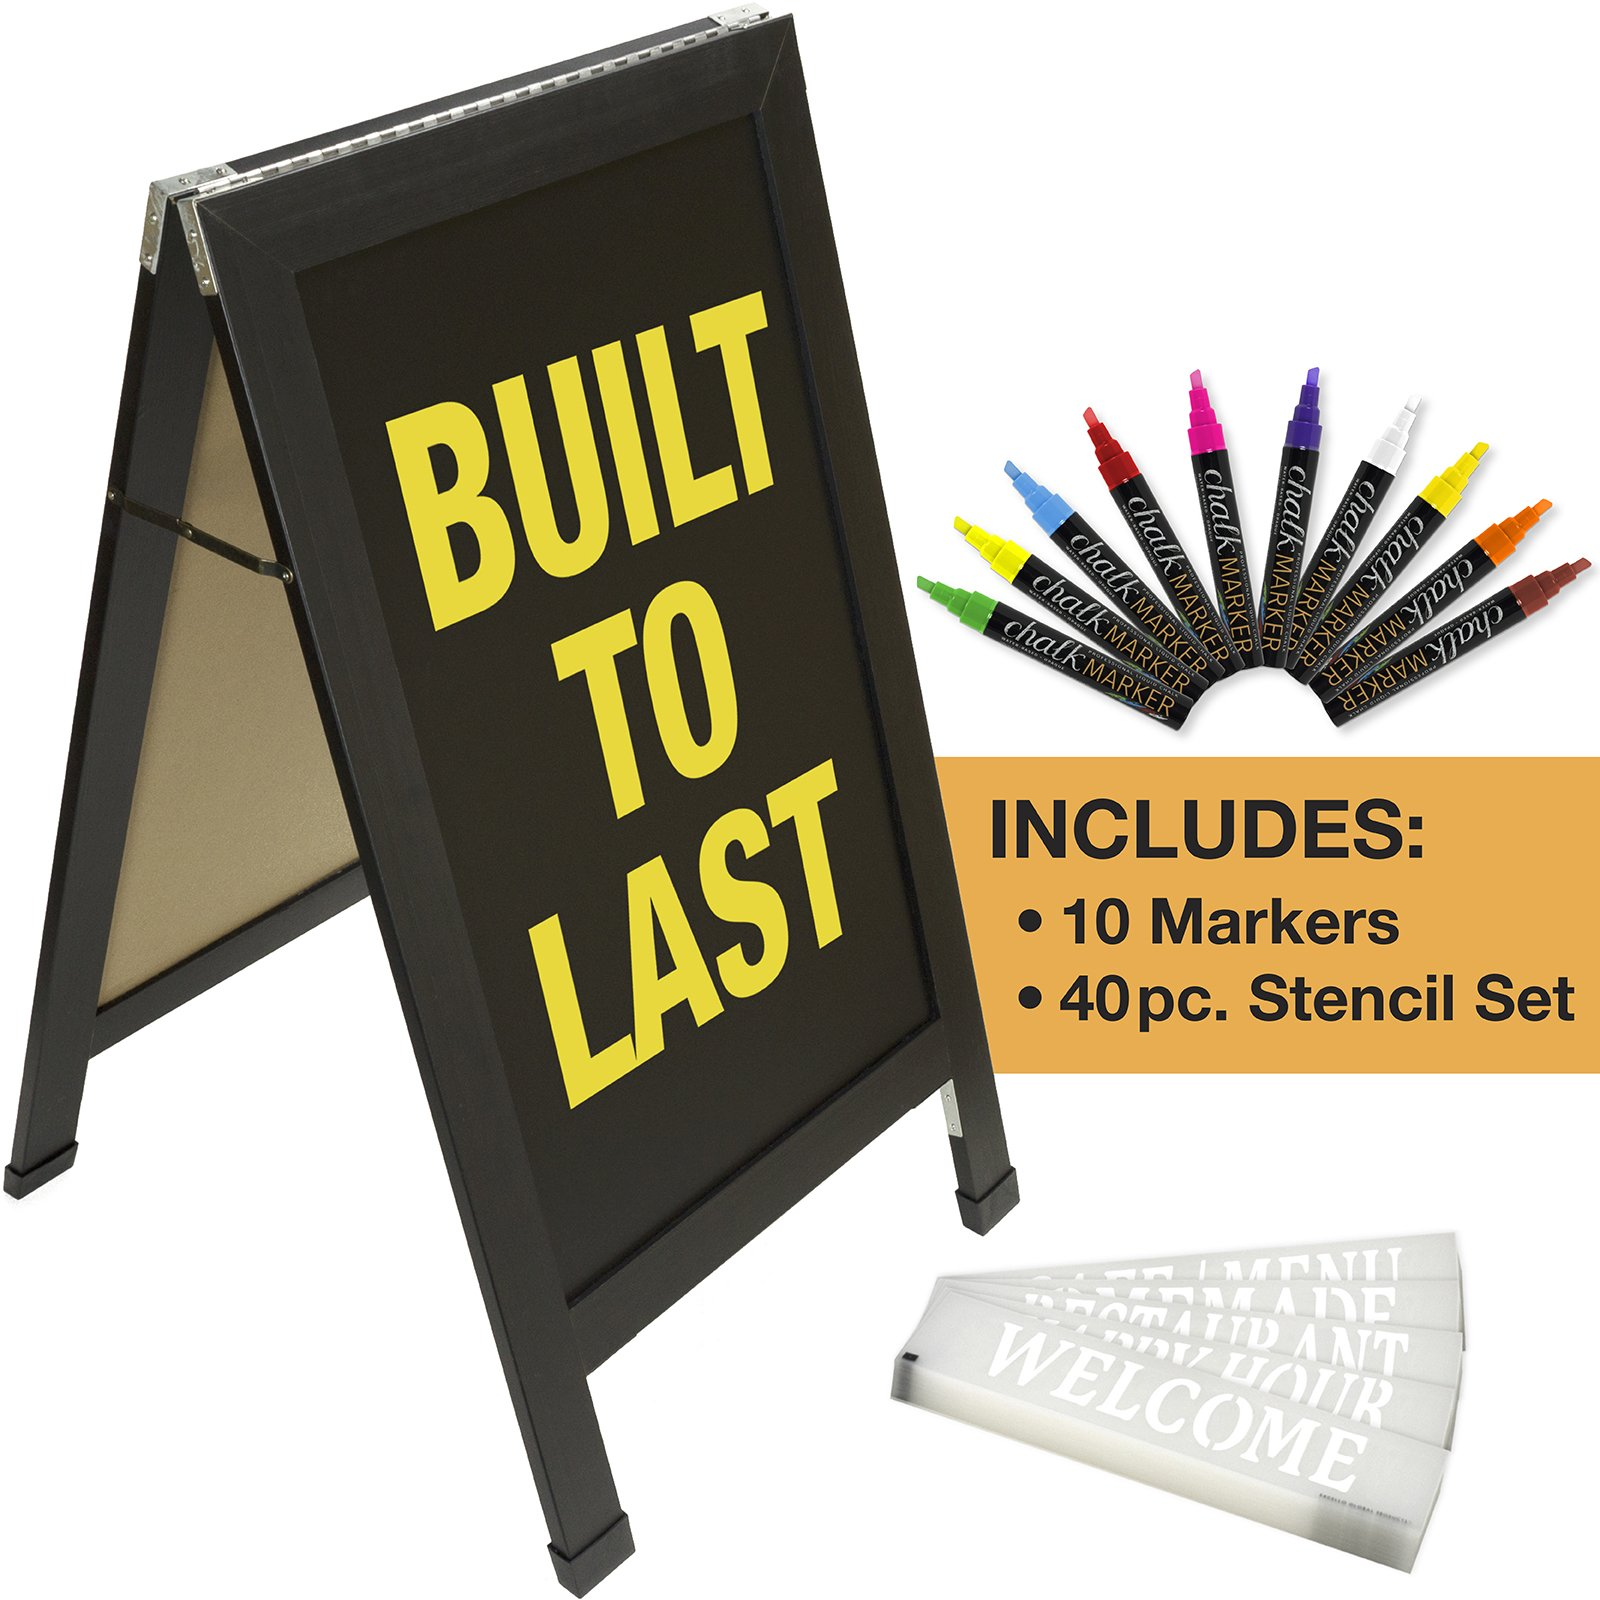 Sandwich Board Sidewalk Chalkboard Sign: Reinforced, Heavy-Duty / 10 Chalk Markers / 40 Piece Stencil Set/Chalk/Eraser/Double Sided/Large 40x23 Chalk Board Standing Sign A-Frame (Black) by Excello Global Products